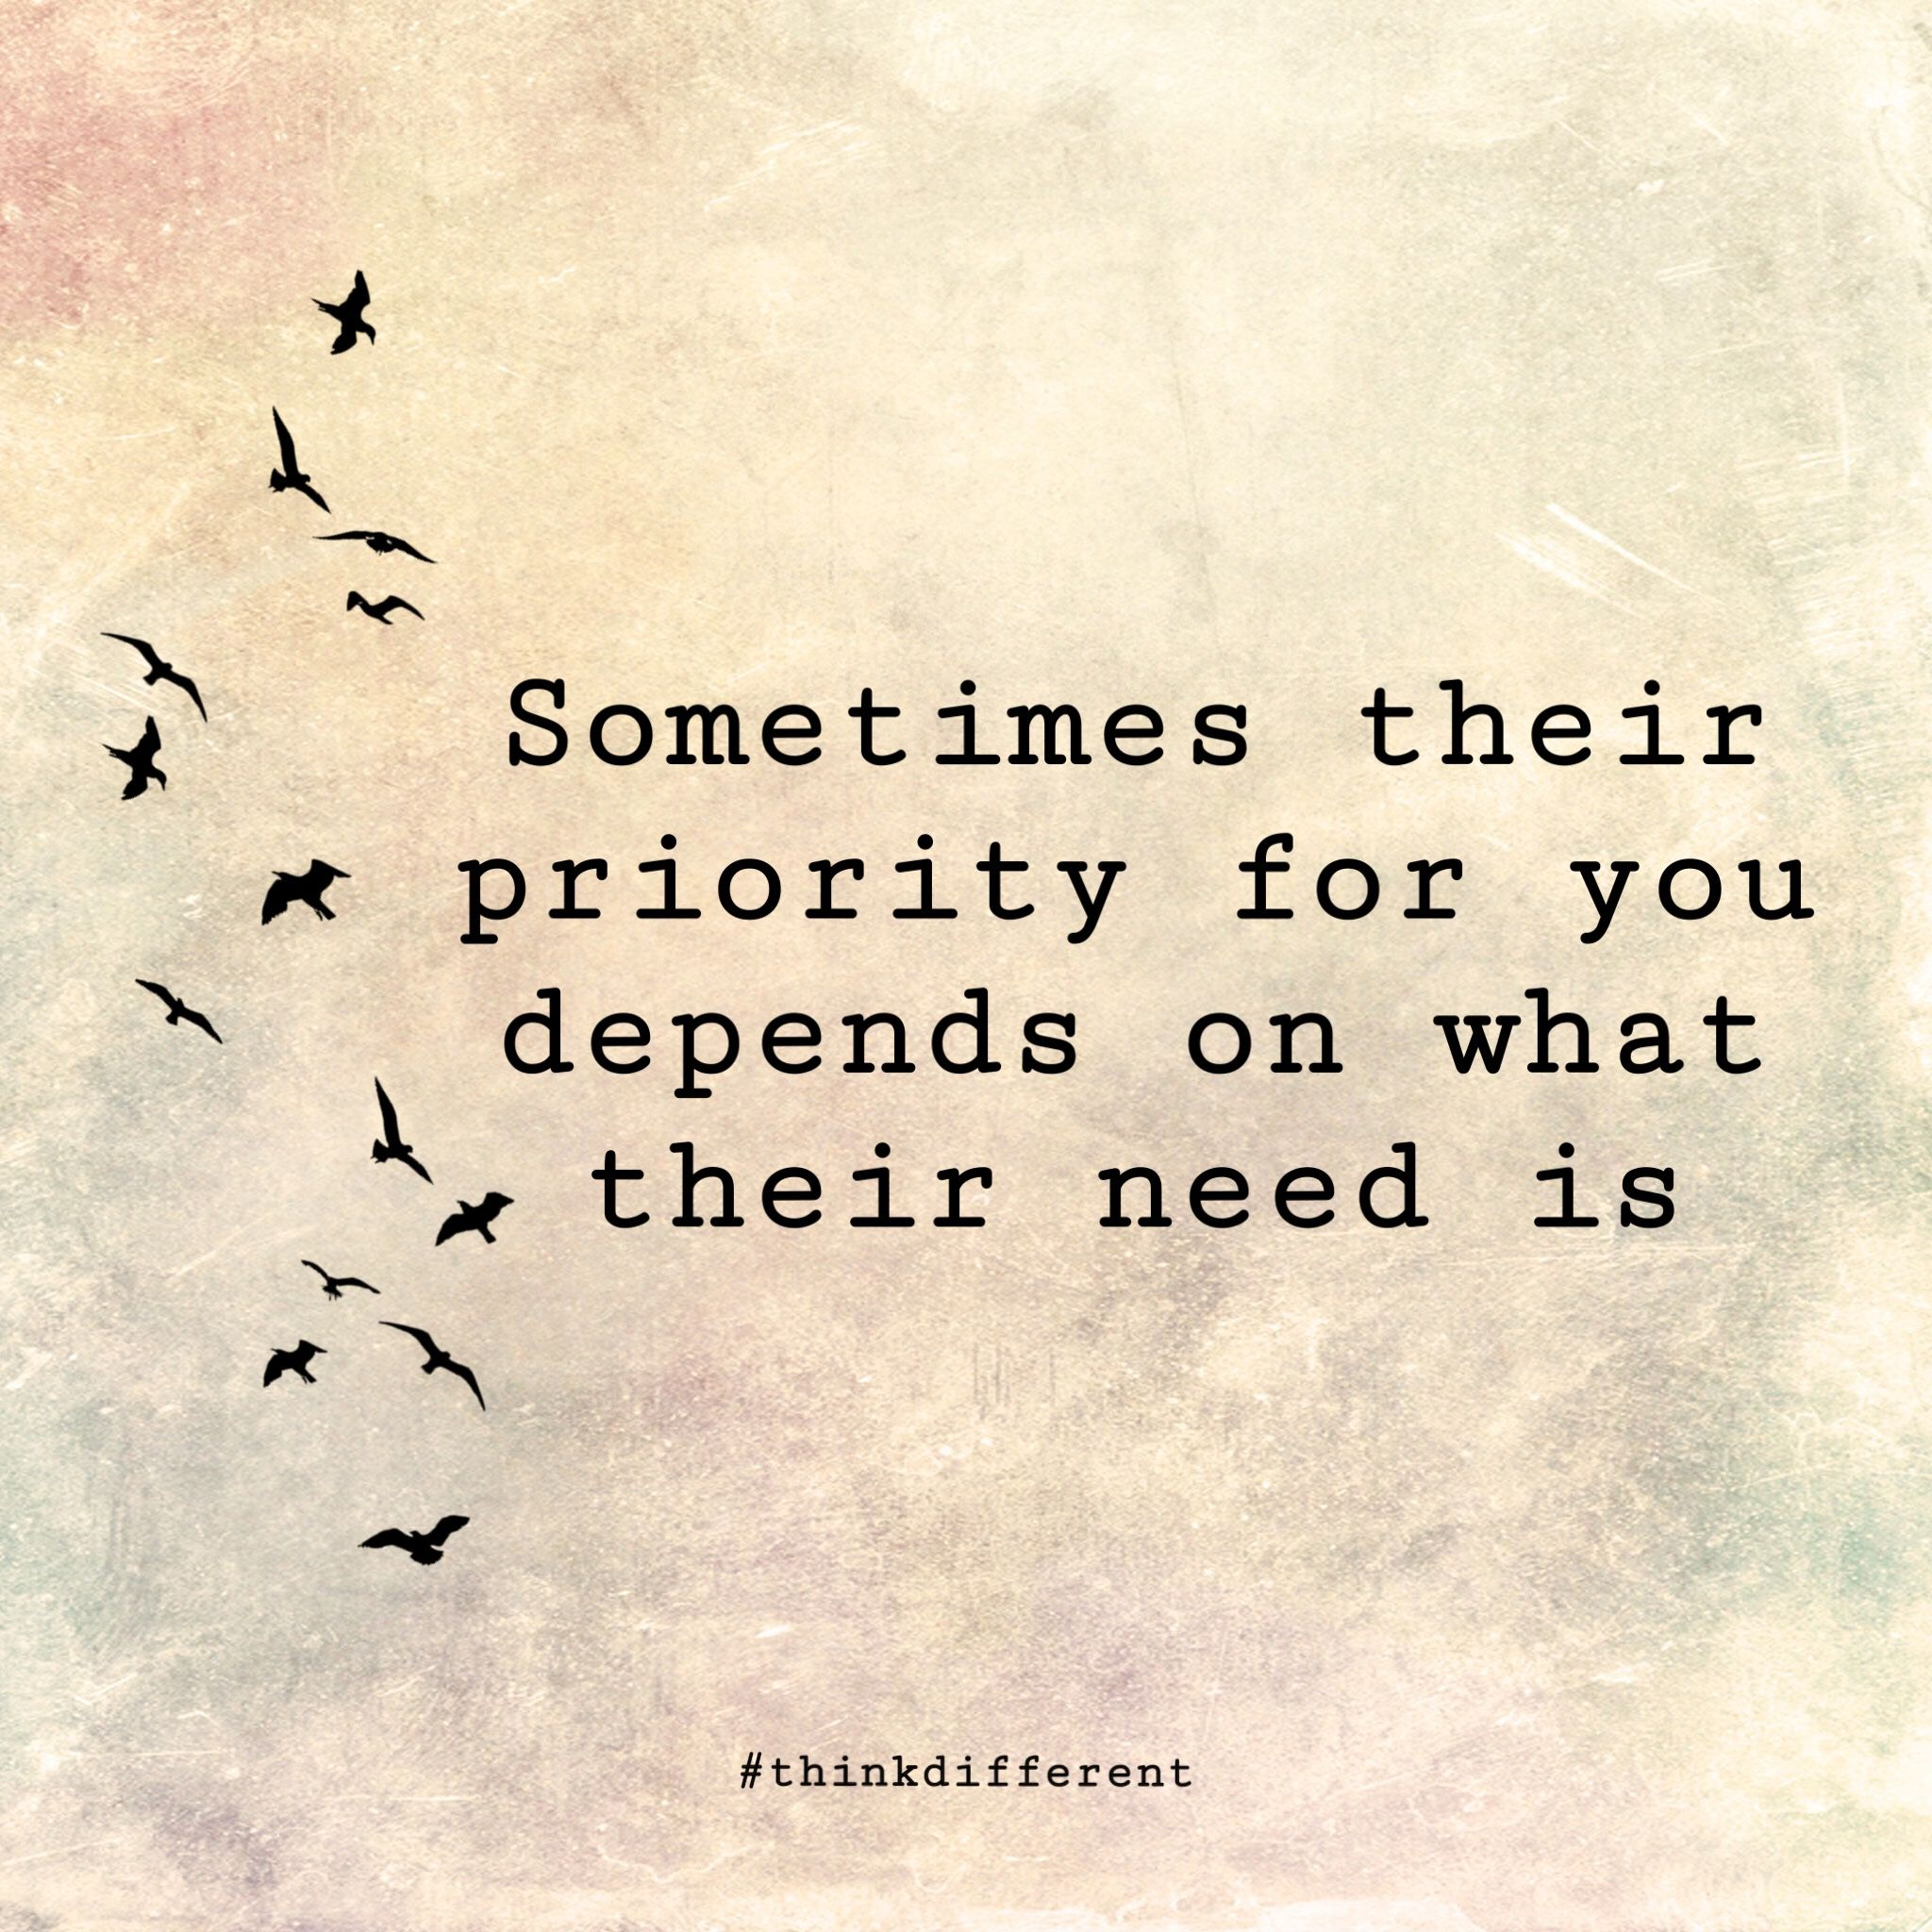 Priorities Wise Quotes Life Quotes Funny Quotes